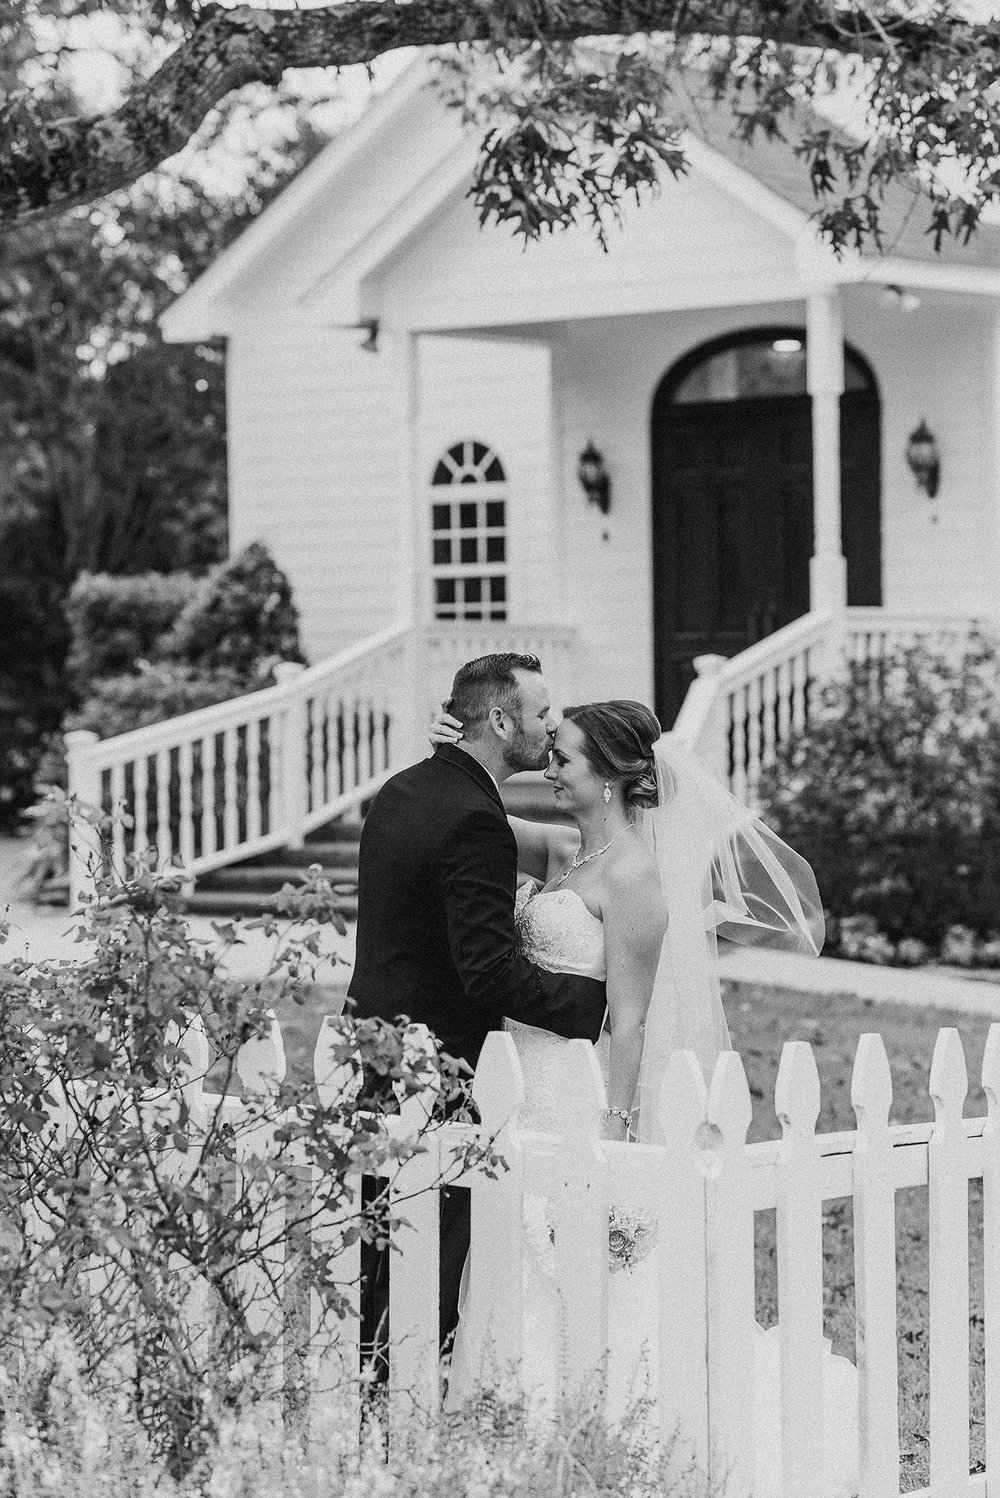 Ashelynn-manor-wedding-photographer-magnolia-texas-bridal